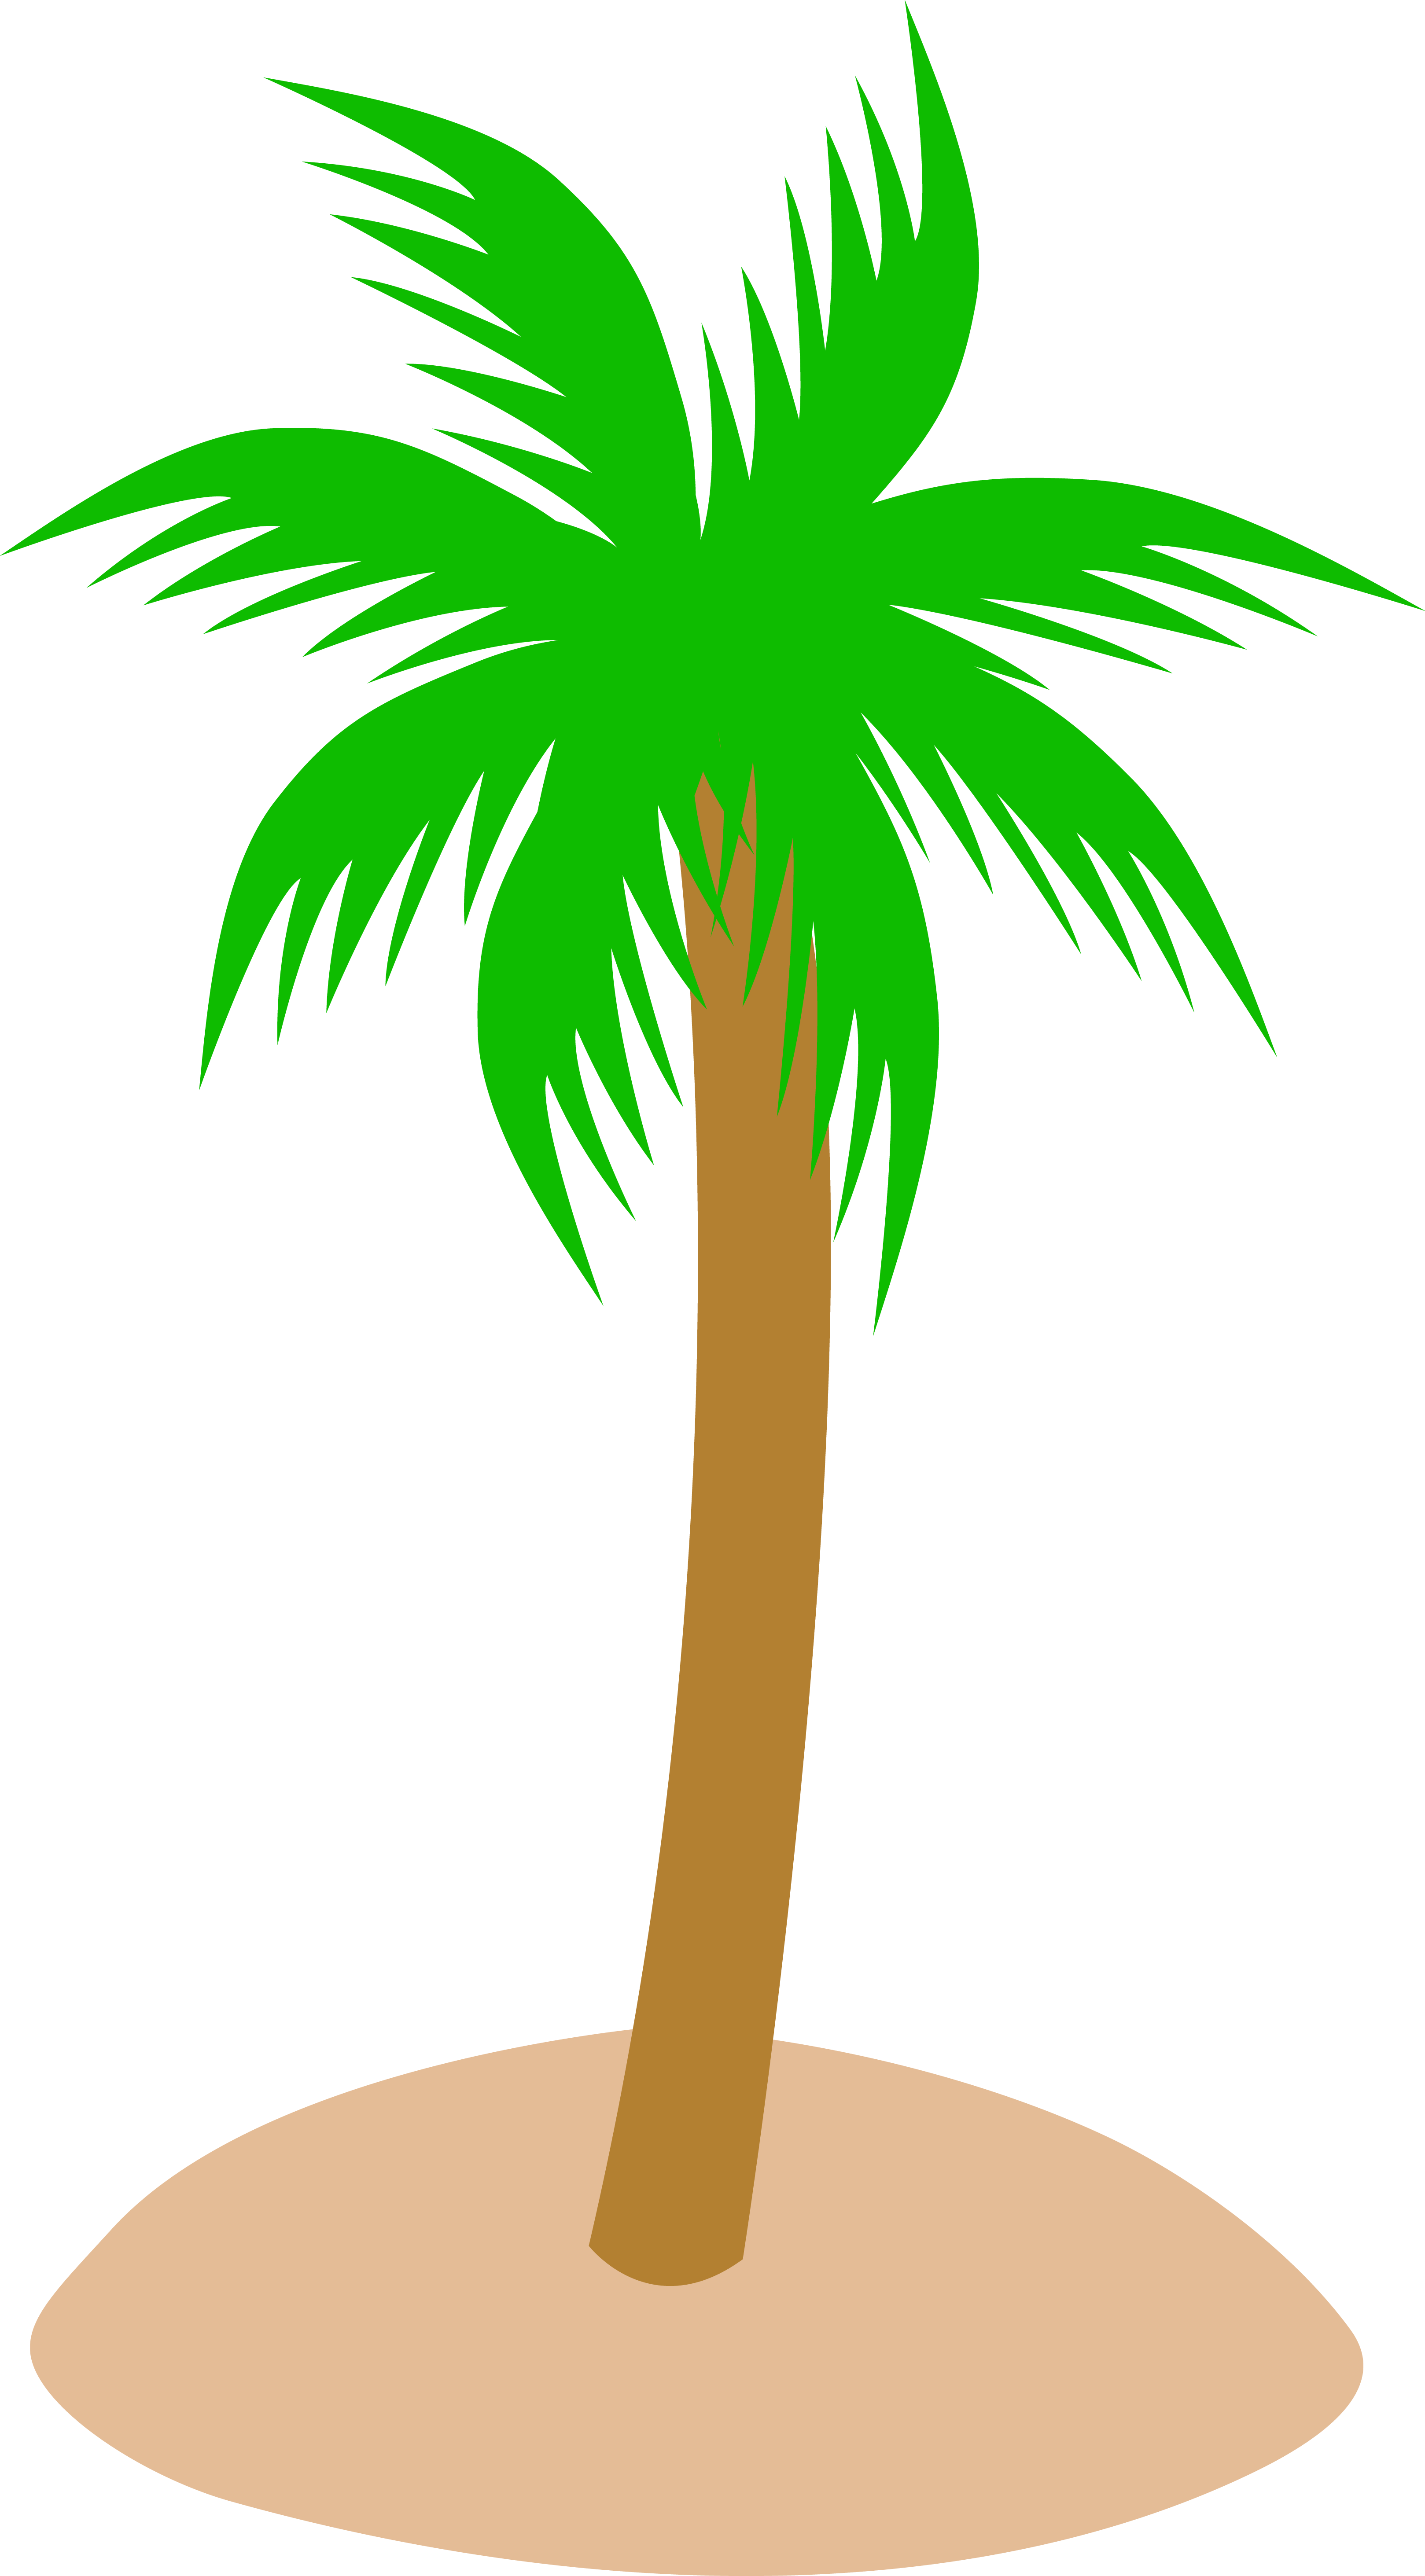 Cartoon Palmtree-Cartoon Palmtree-0